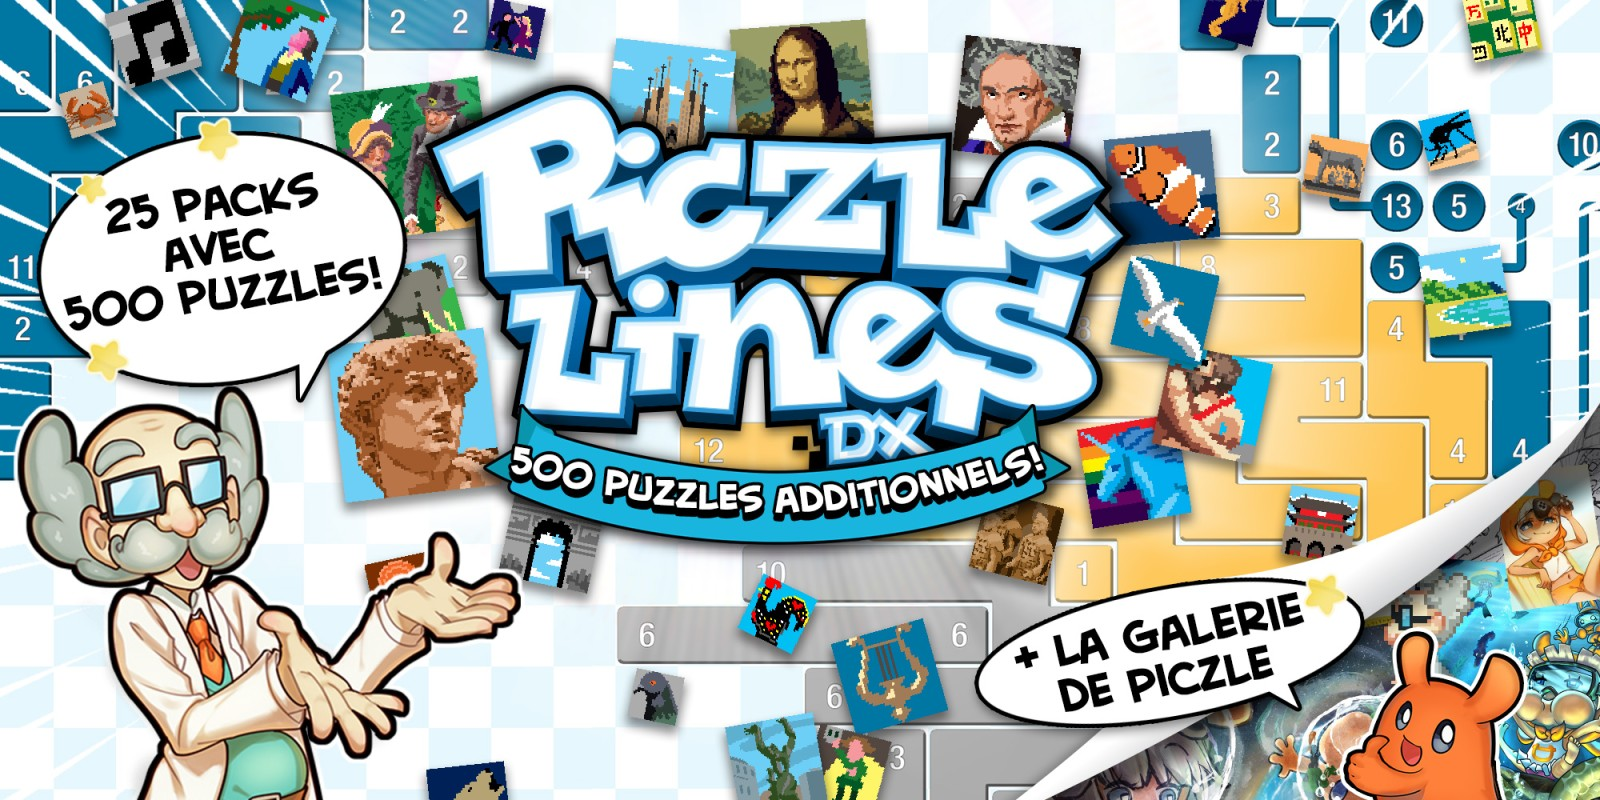 Piczle Lines DX 500 puzzles additionnels!